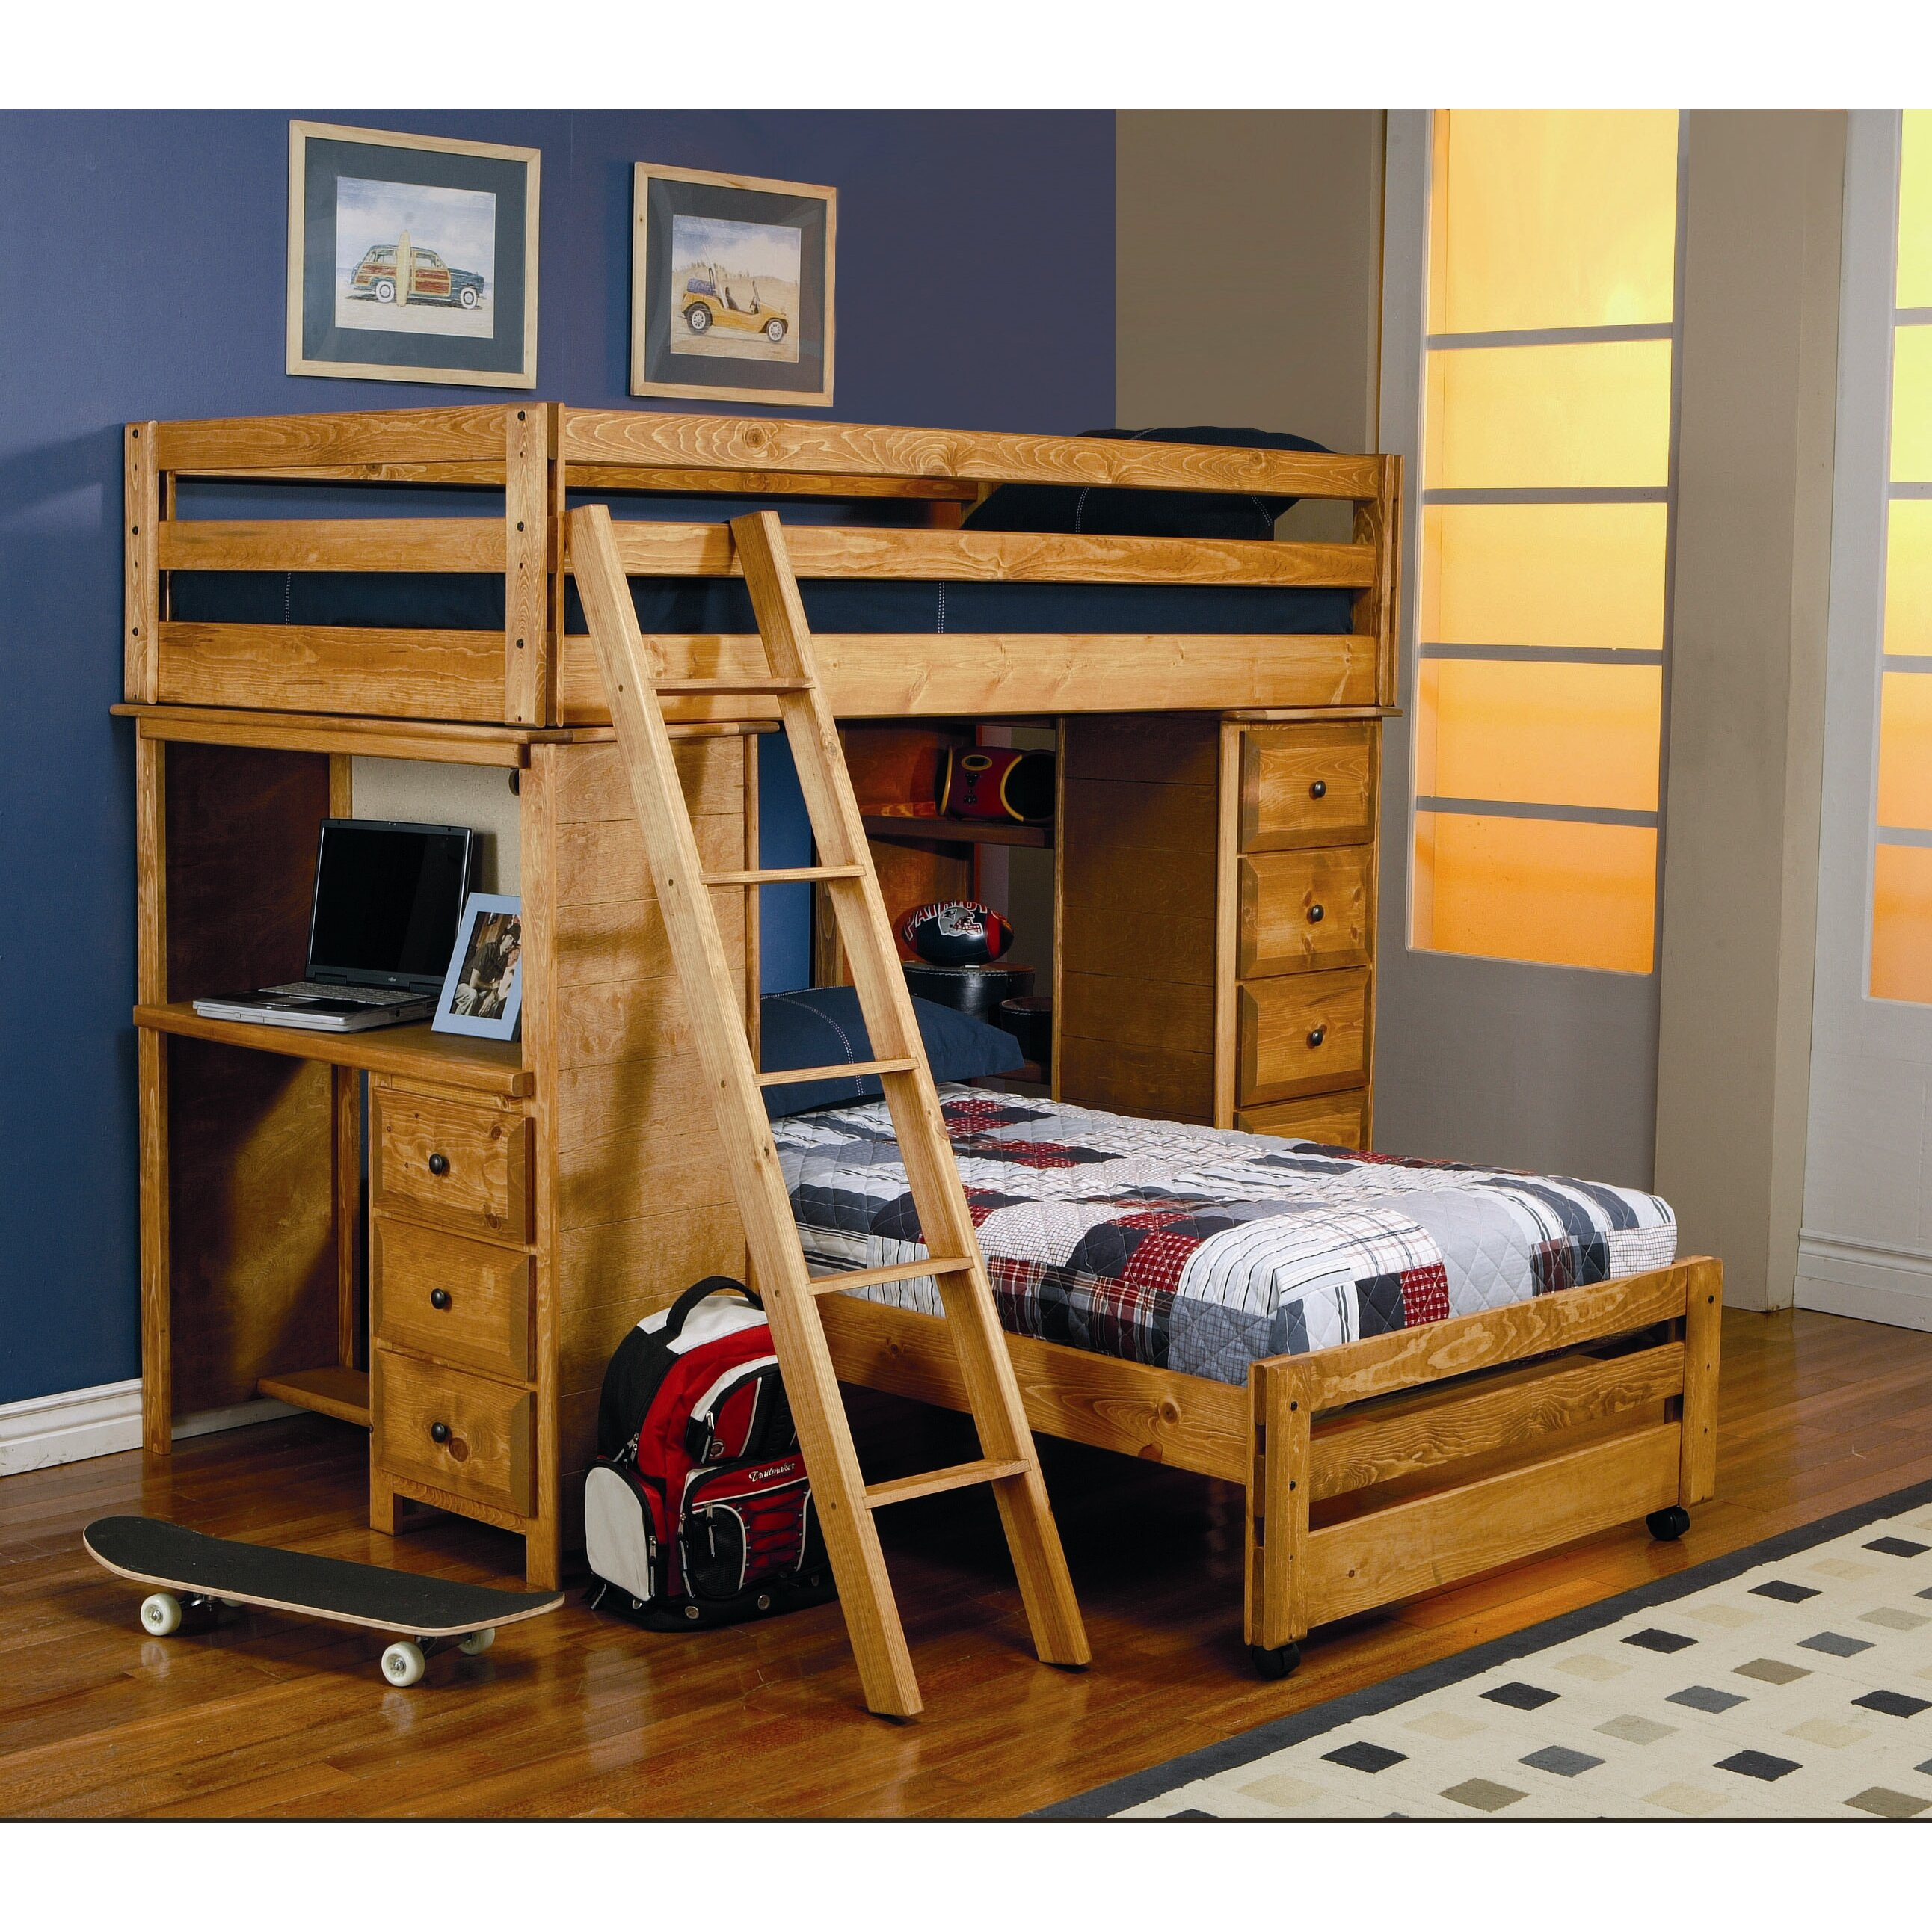 Bunk beds with desk and closet - Enchanted Twin L Shaped Bunk Bed With Storage